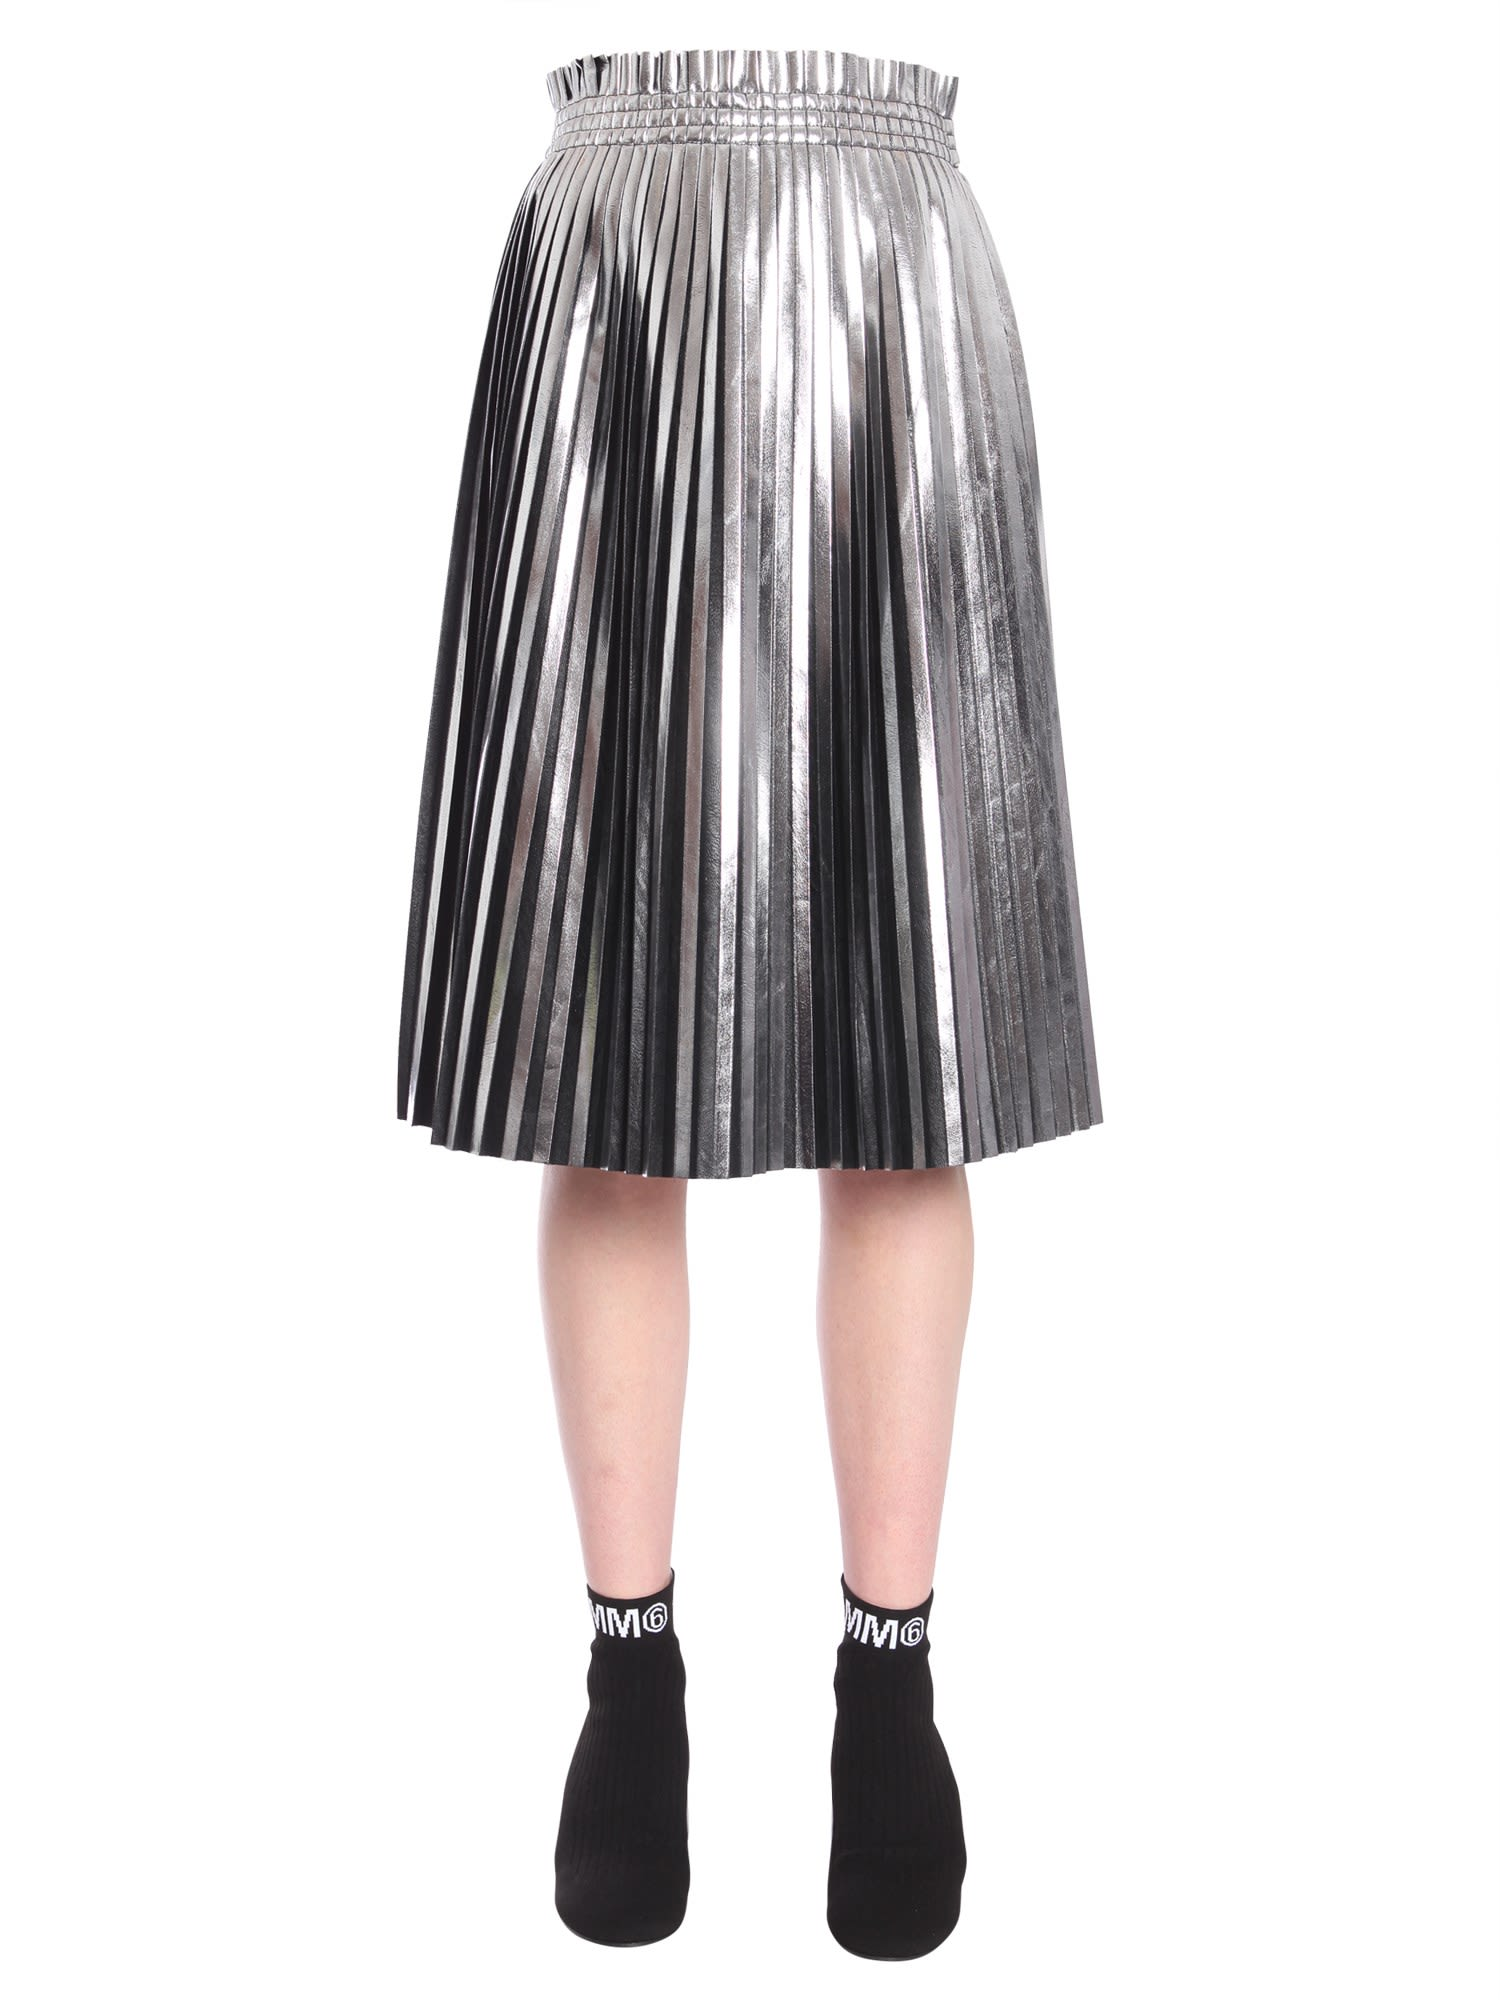 Mm6 By Maison Margiela Black And Silver Pleated Faux Leather Skirt, Argento